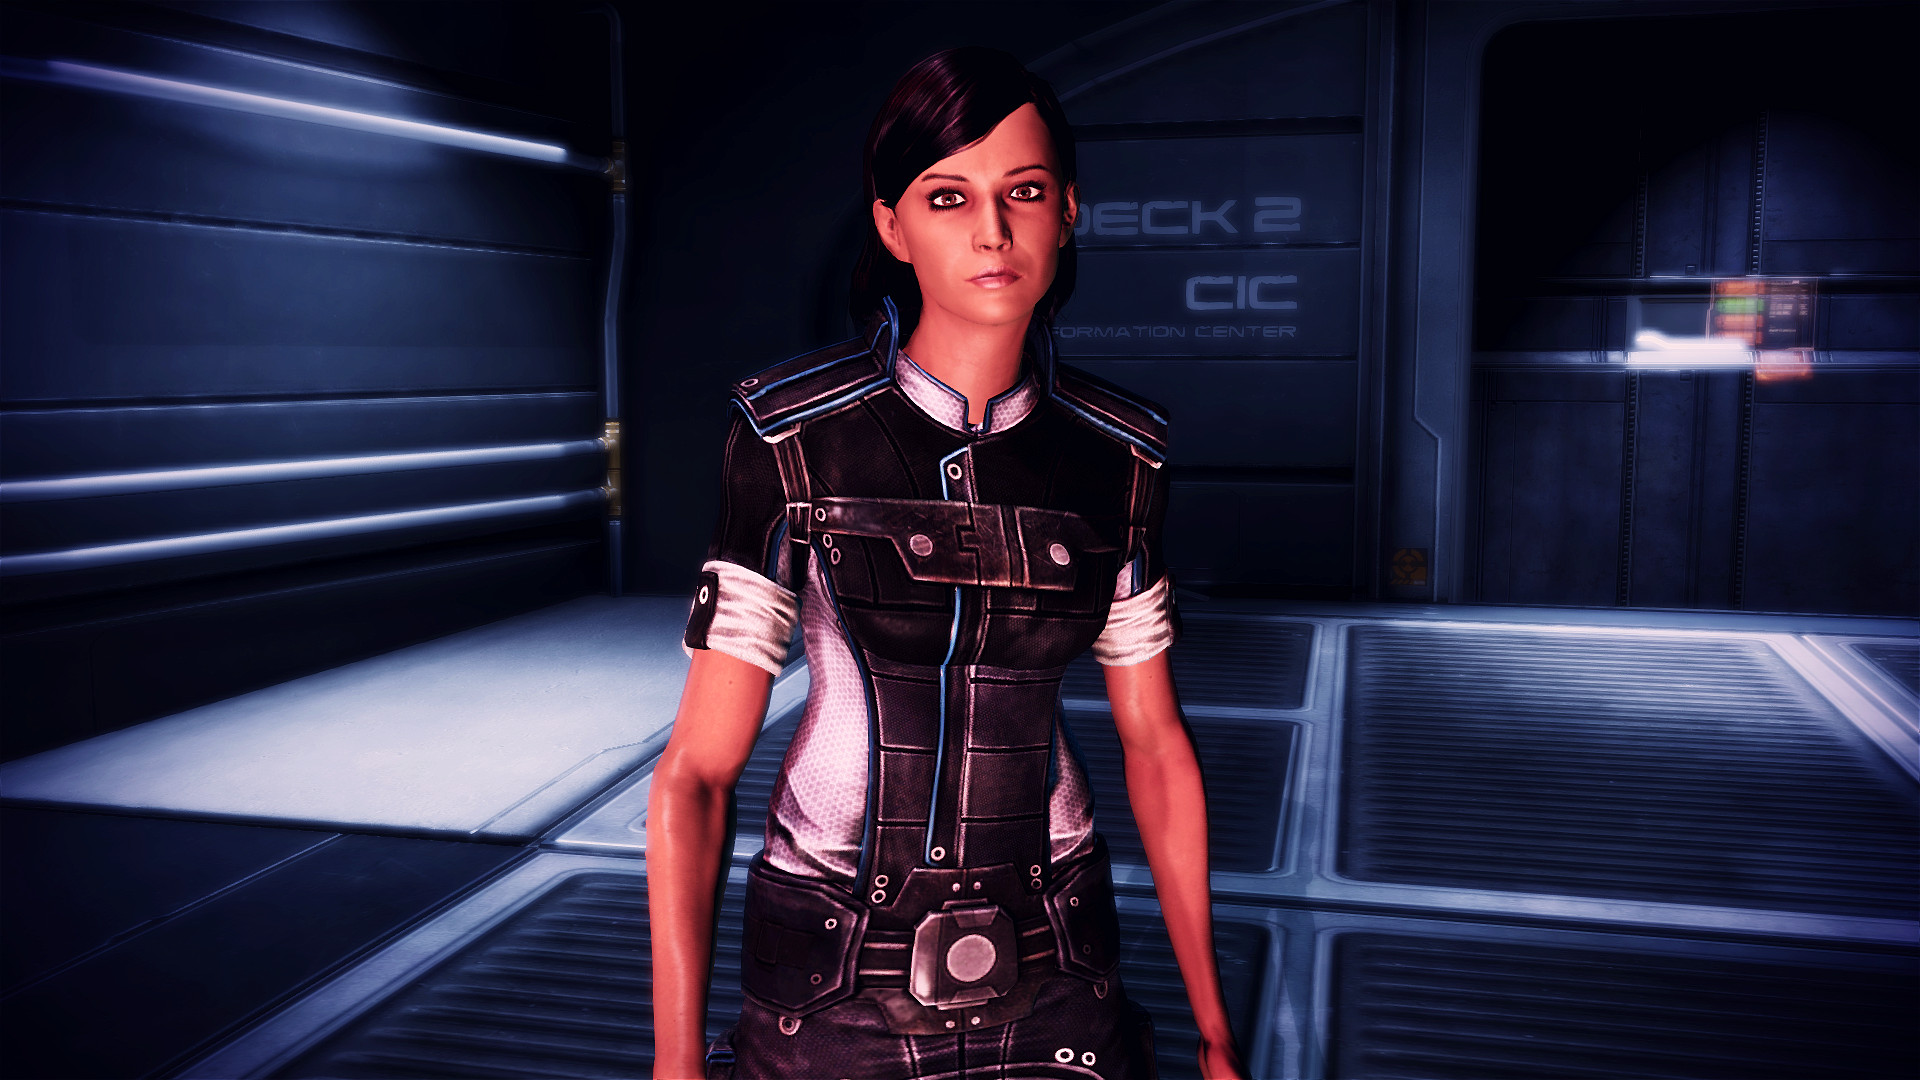 Mass effect 3 nude forum hentai pictures